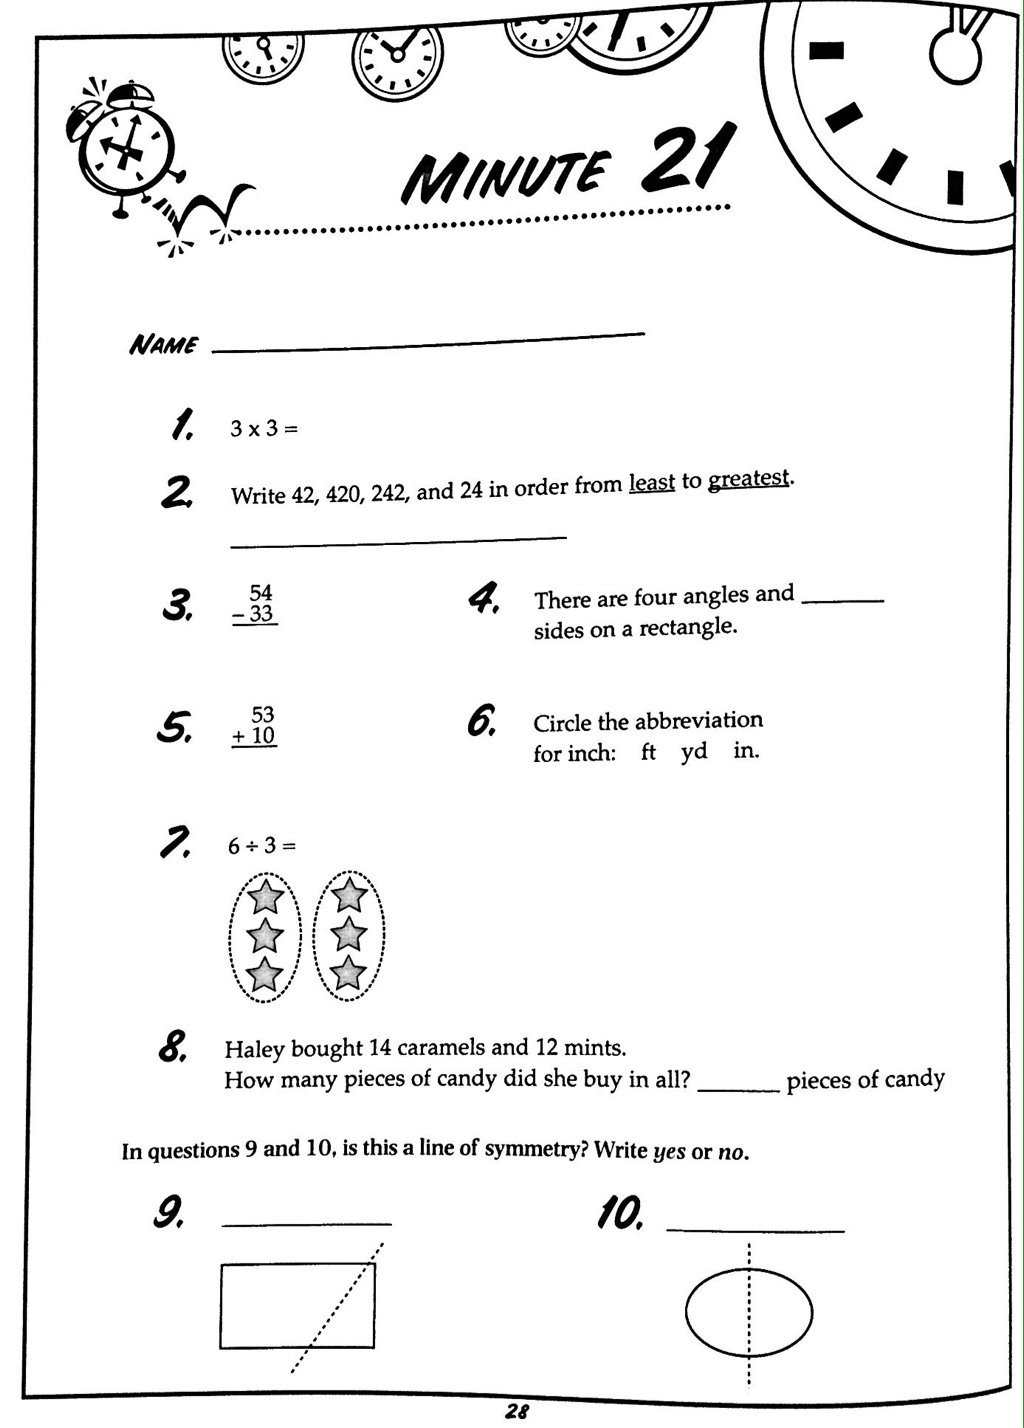 Minute Math Worksheet For 4th Grade